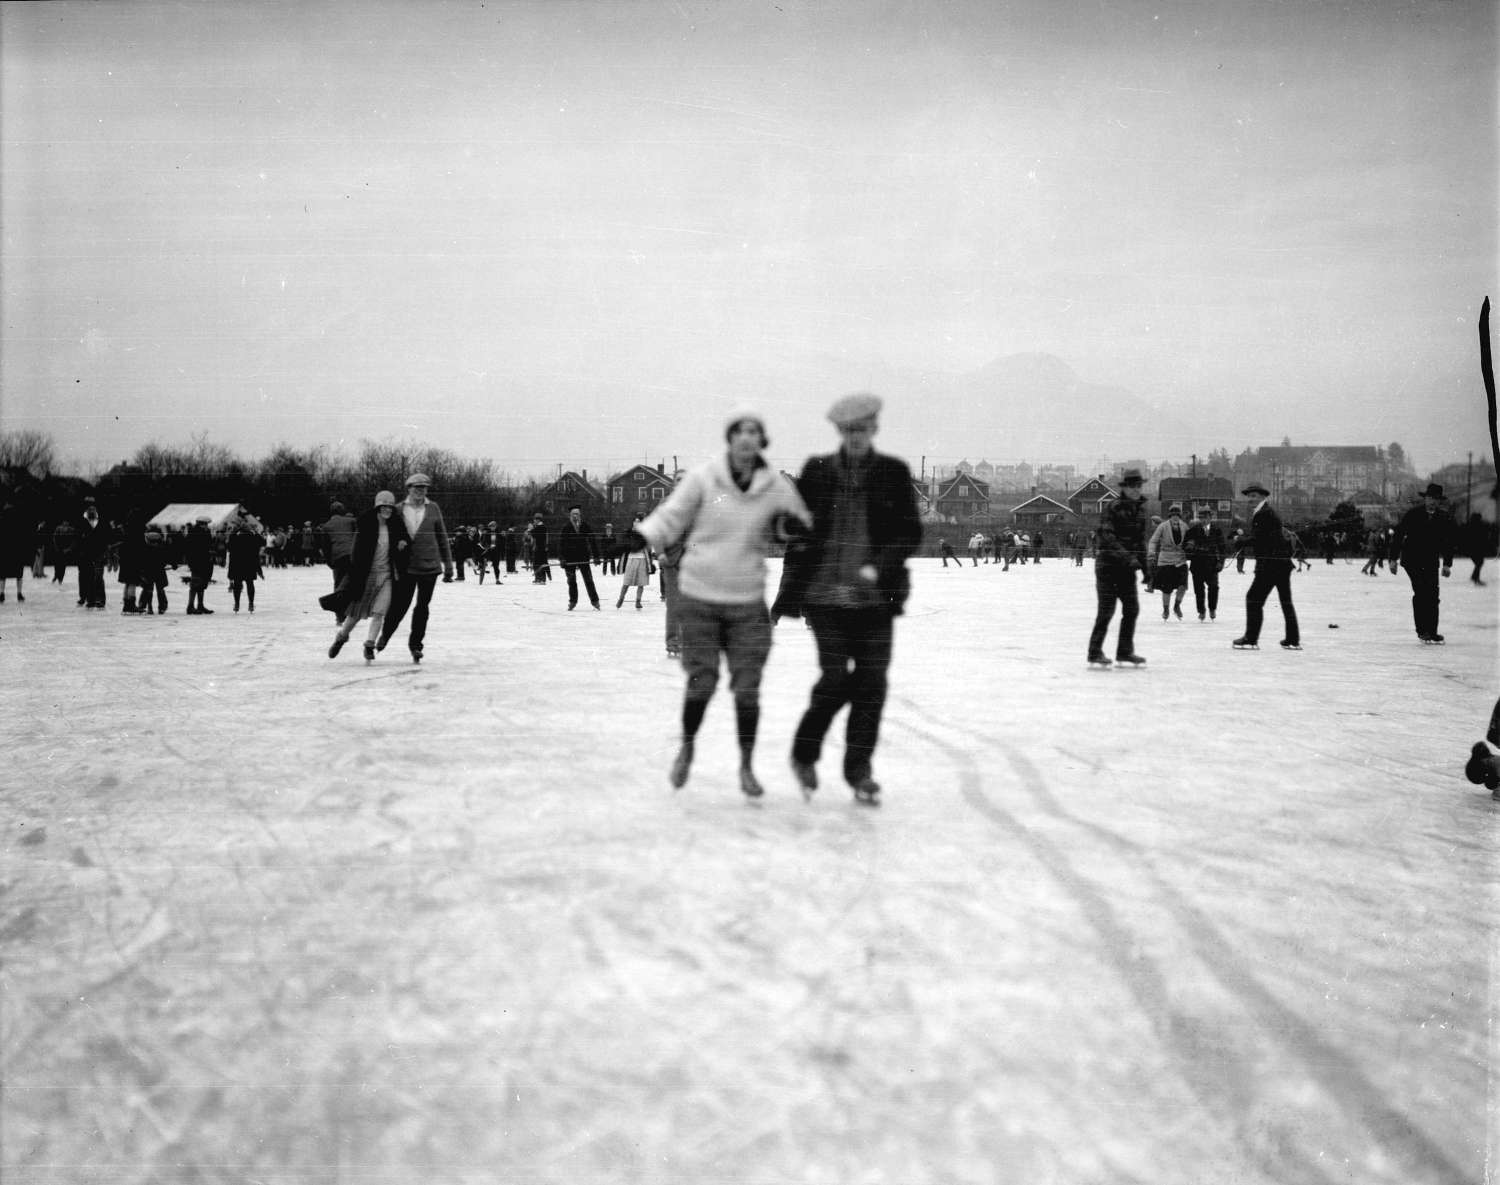 Skaters with houses in the background